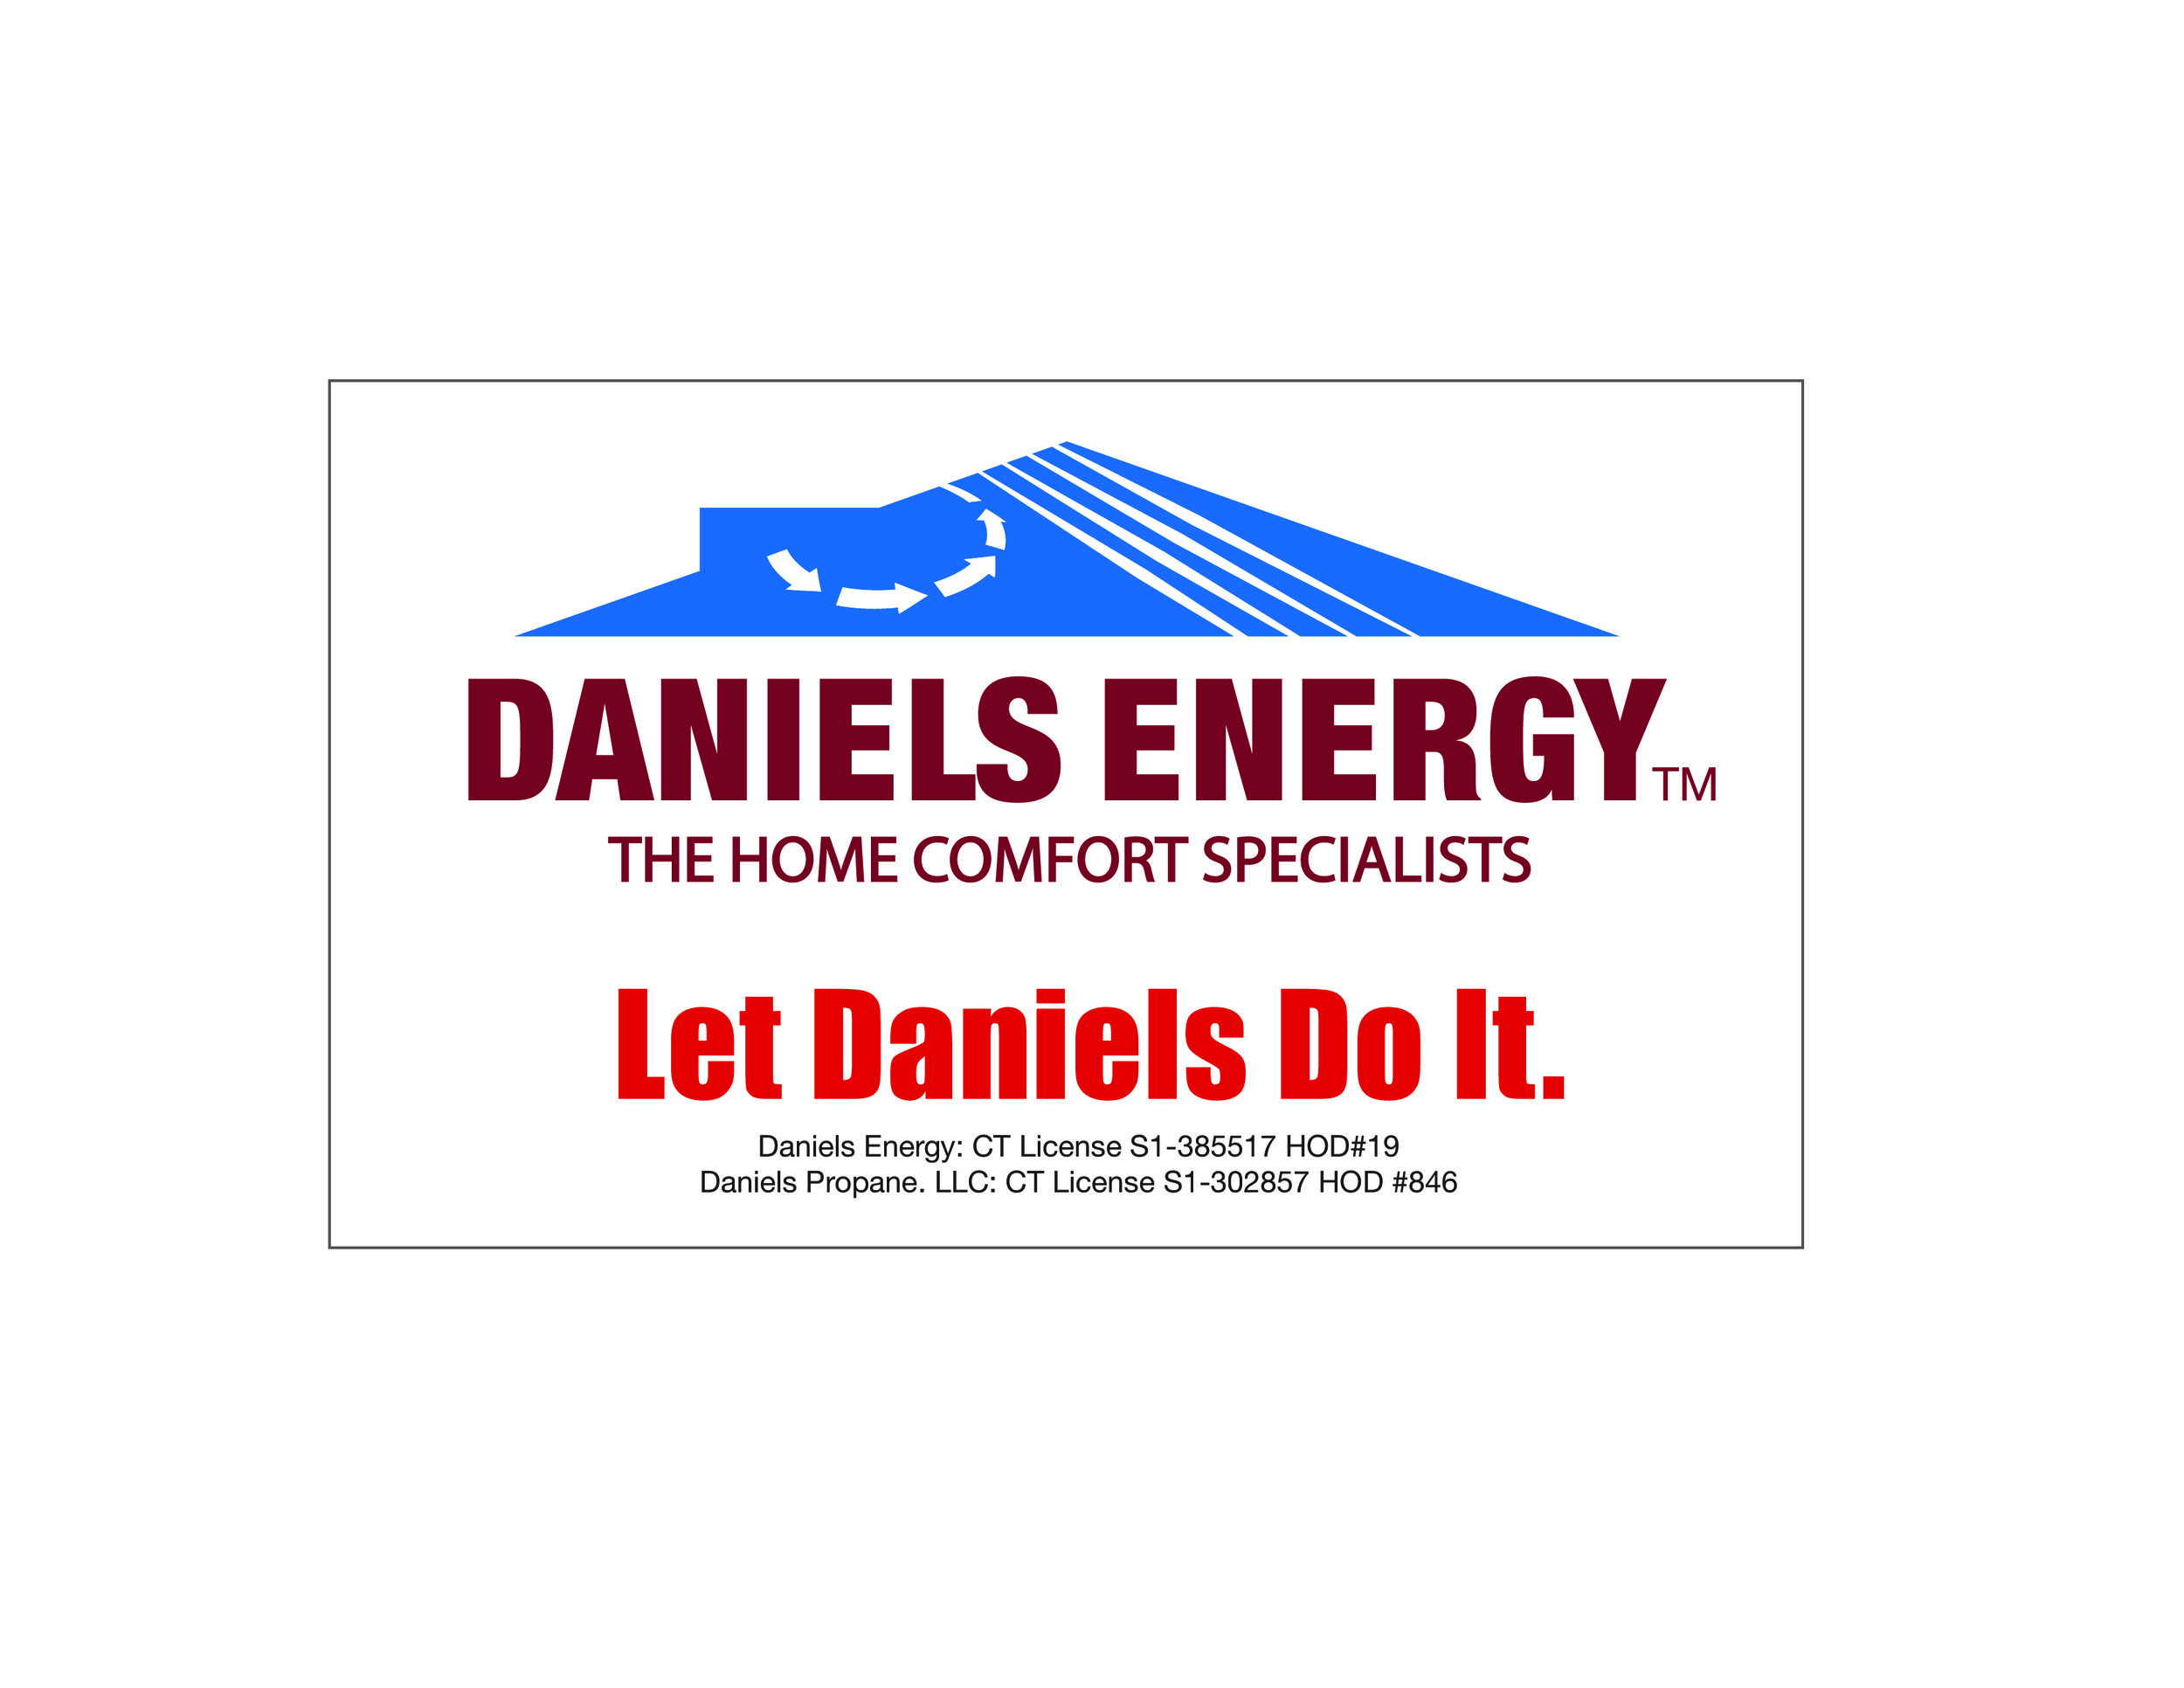 - Bronze Level https://www.danielsenergy.com/